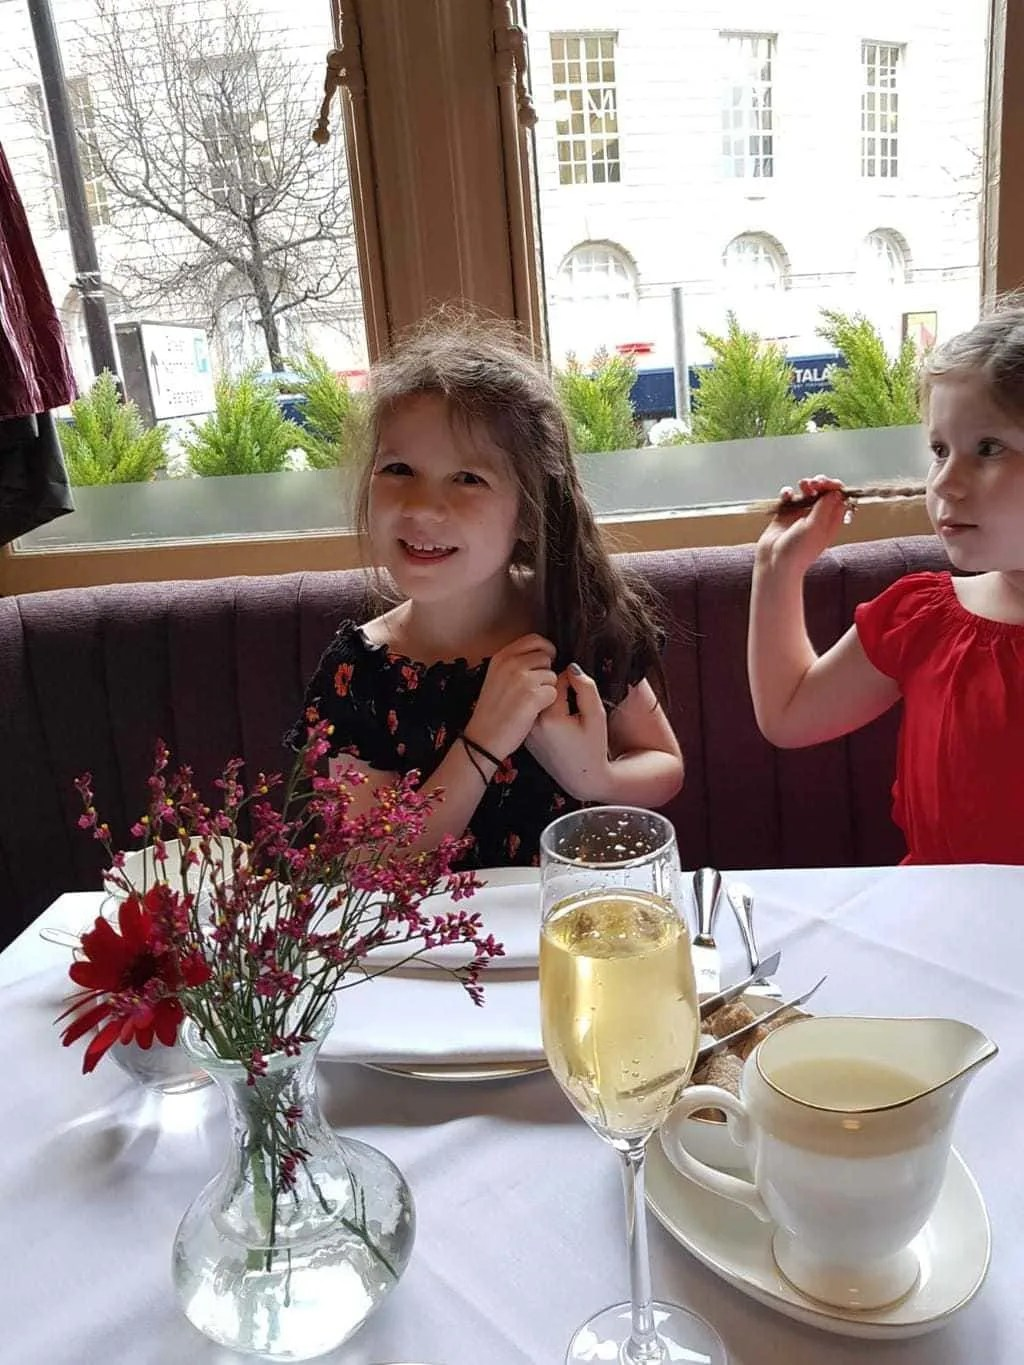 Childrens Afternoon Tea at The Midland Hotel, Manchester